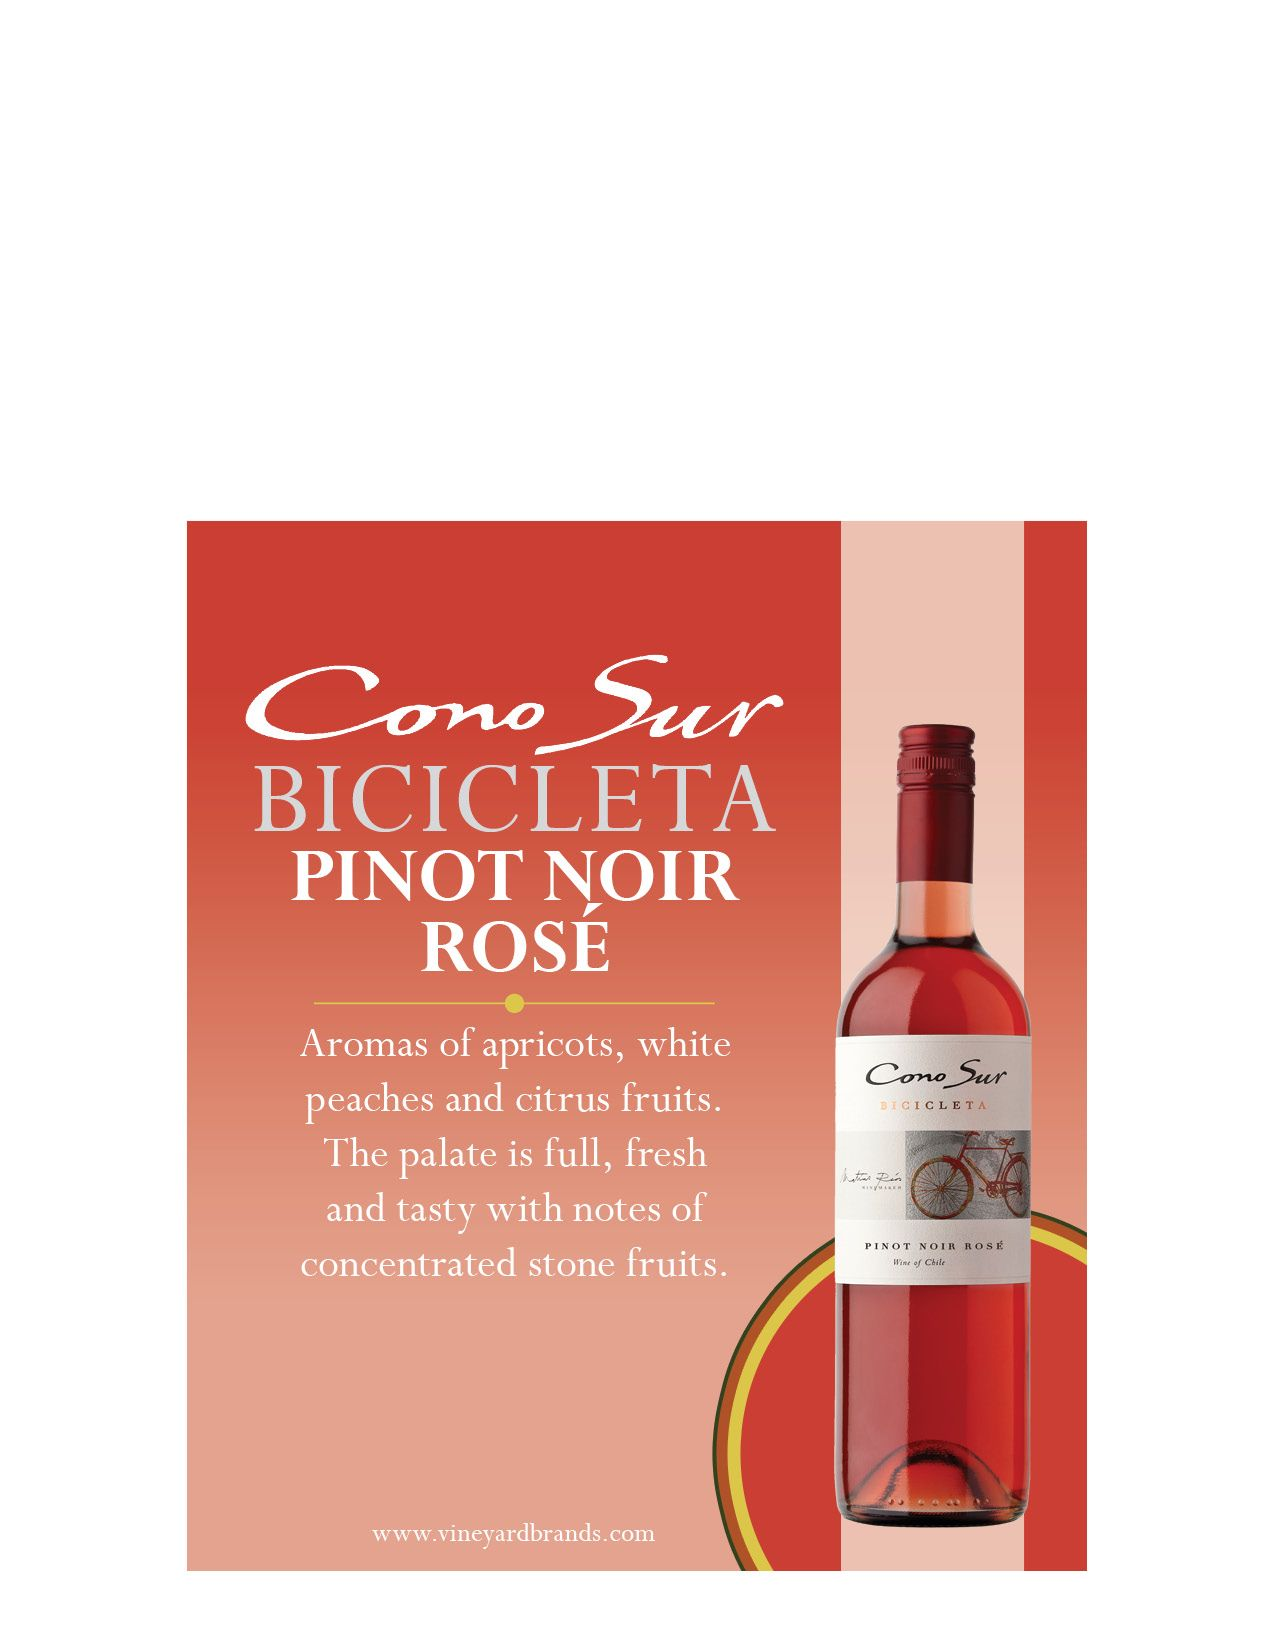 Cono Sur Bicicleta Pinot Nor Rose Stone Fruits Rose Wine Bottle Wine Bottle